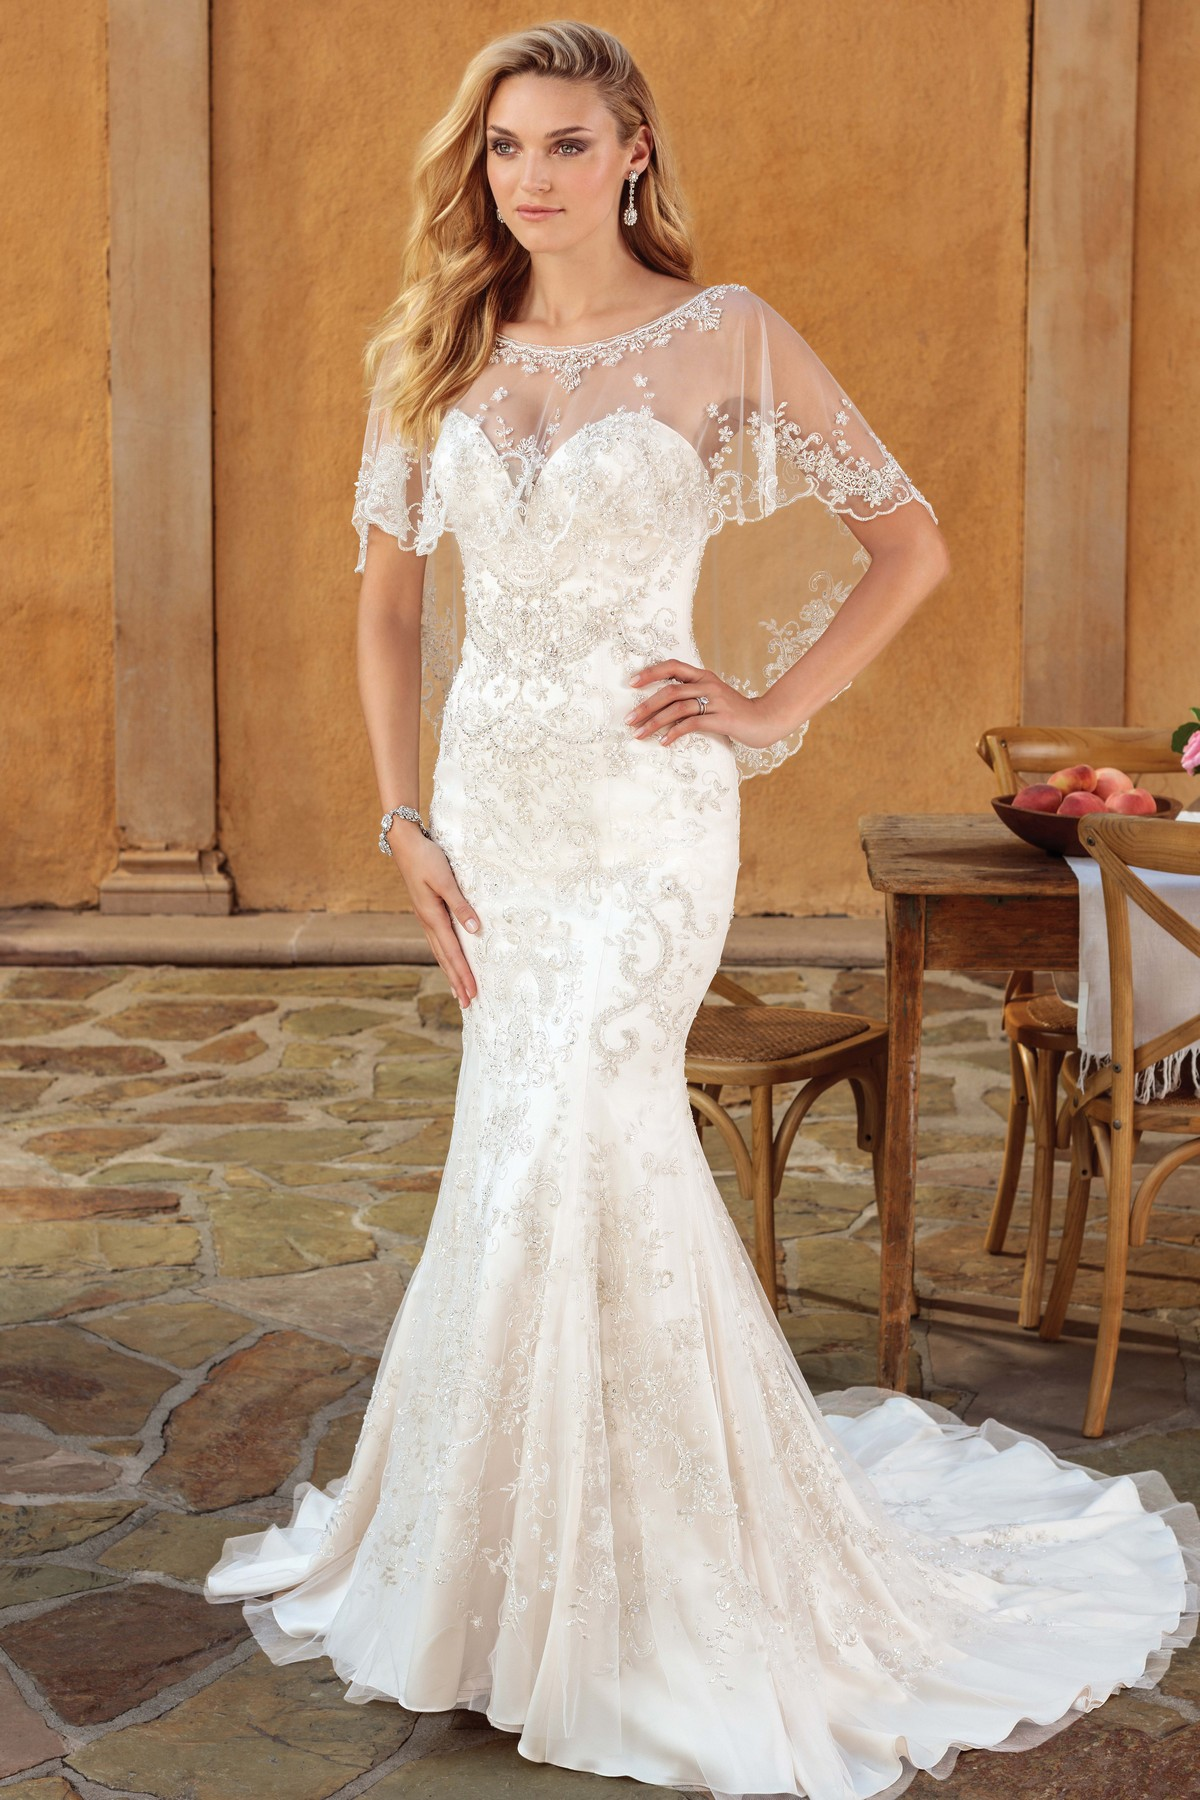 e72a7f94009a4 Style 2323 Haven by Casablanca Bridal - Find Your Dream Dress